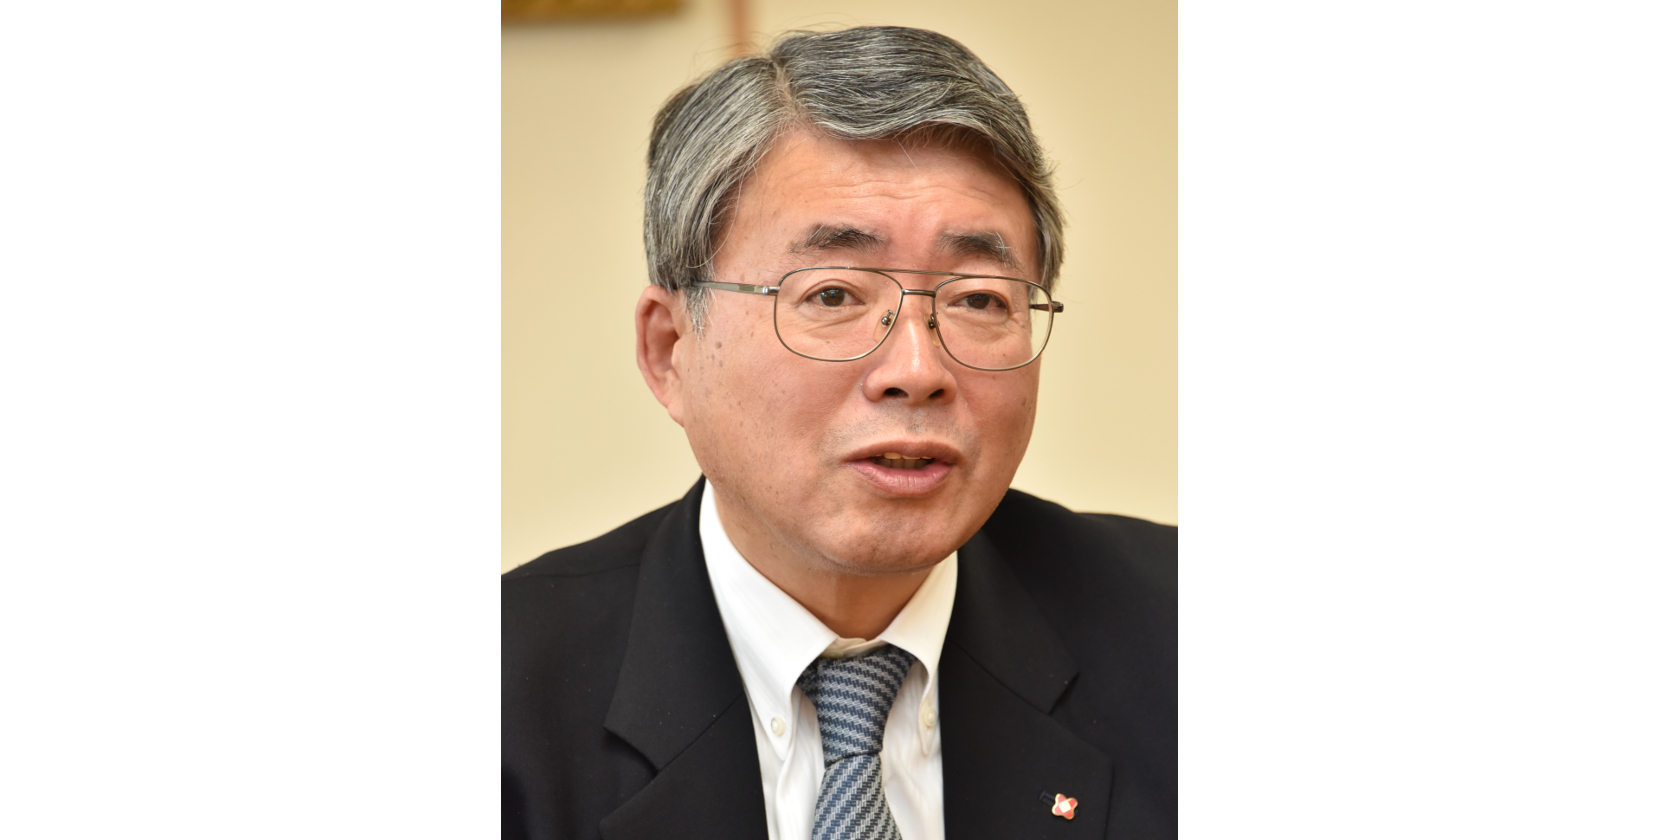 Interview: Tosoh President Toshinori Yamamoto Talks Growth, Aims for Commodity and Specialty Products